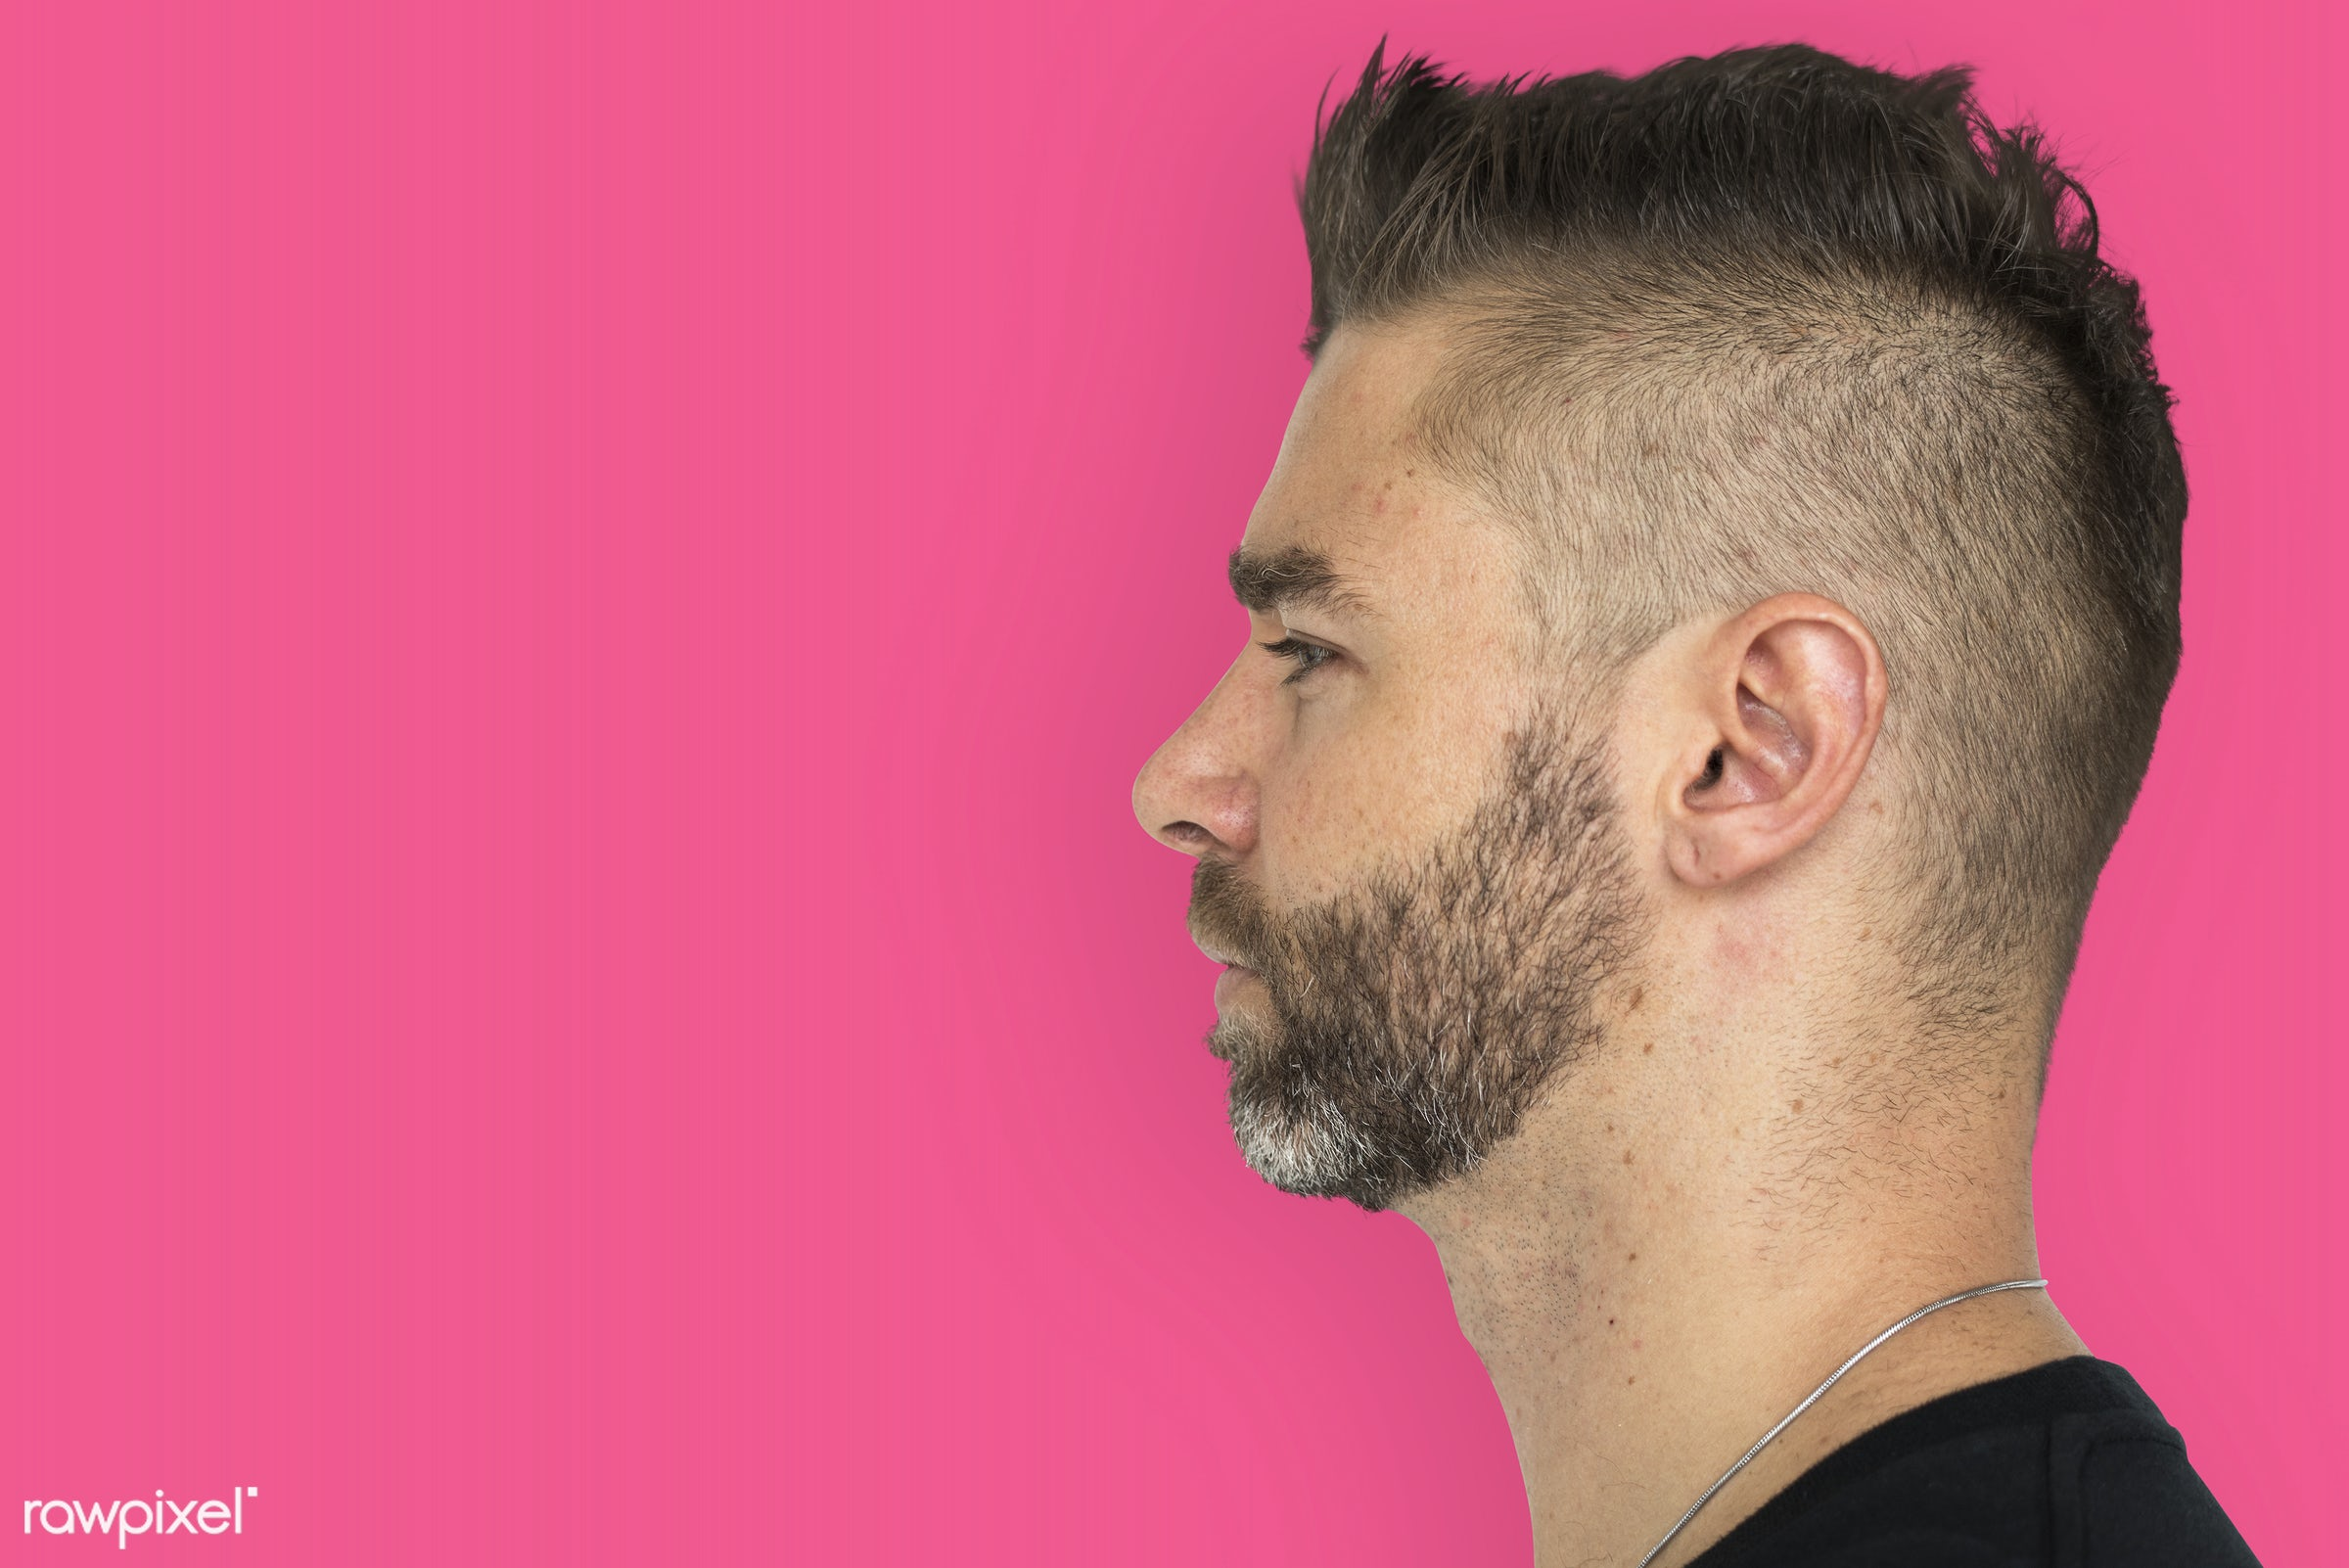 adult, alone, beard, black top, candid, caucasian, confidence, copy space, expression, face, face expression, guy, hair,...